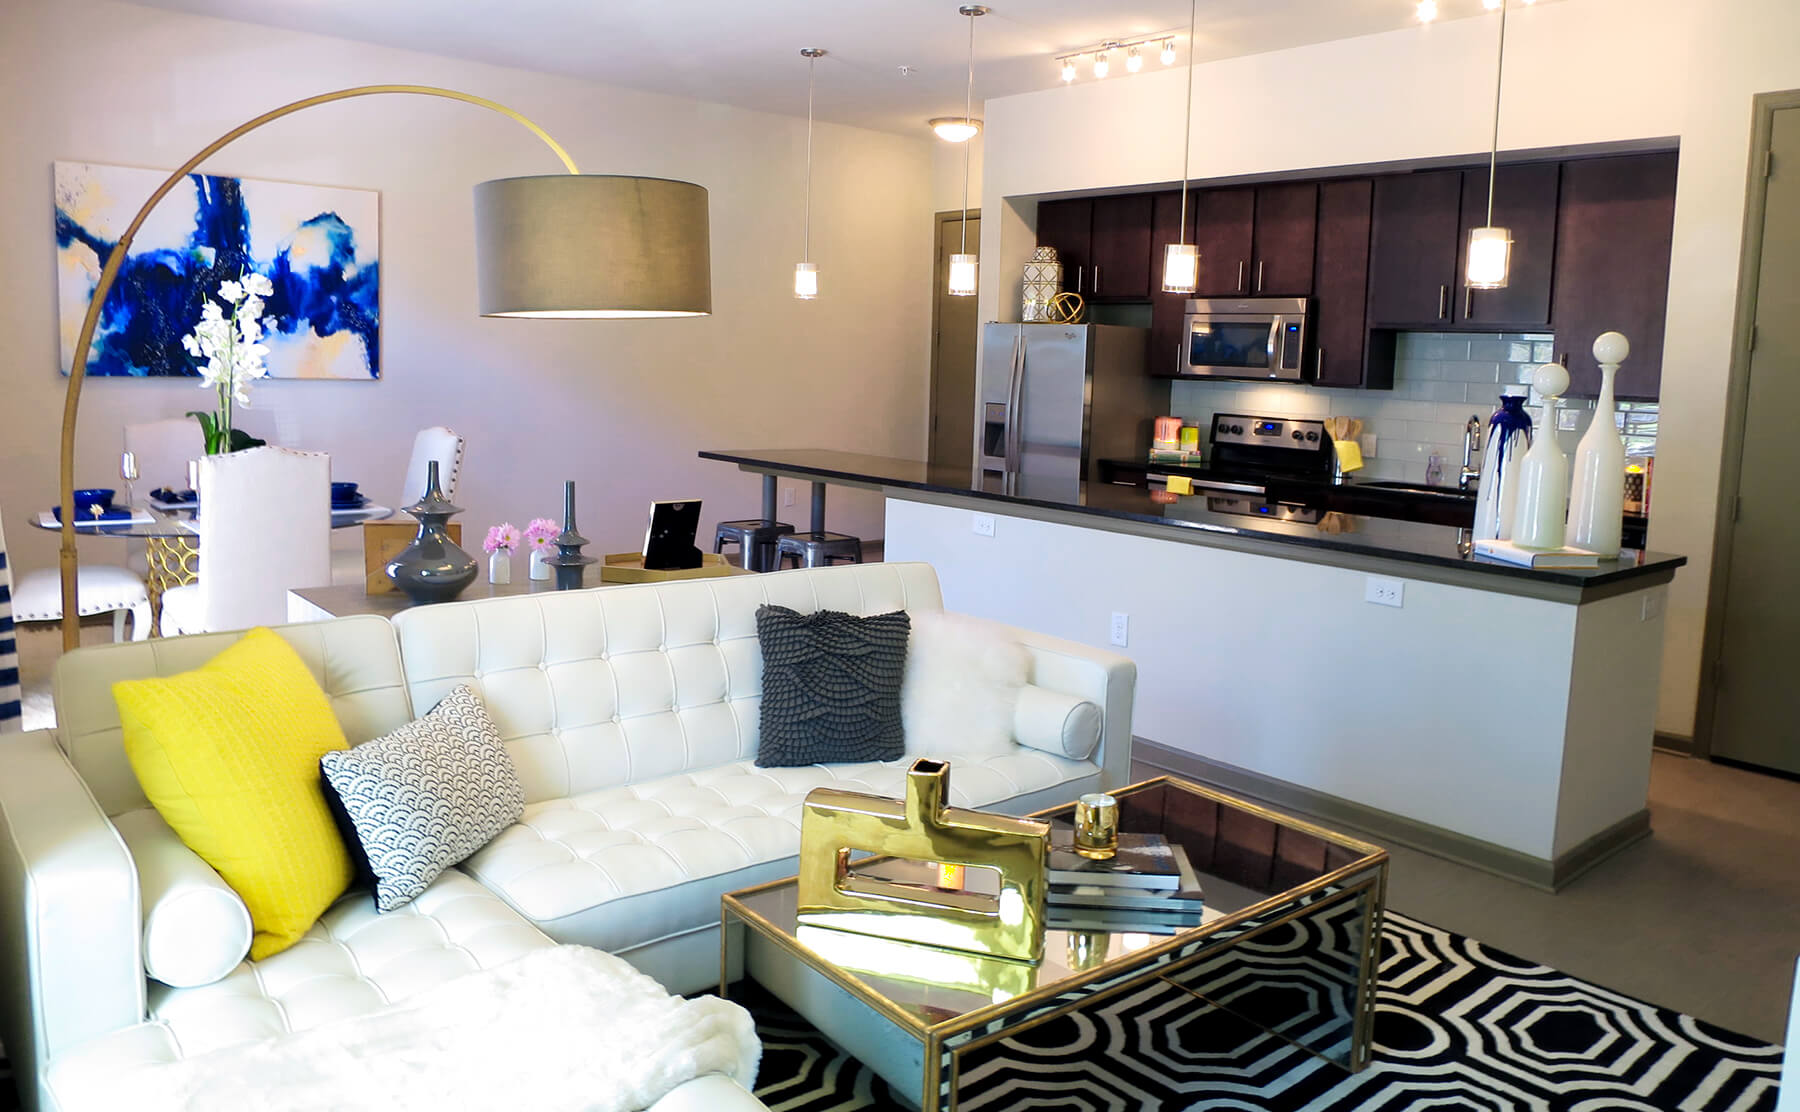 Lakewood Dallas Apartment Living - Open floor plans